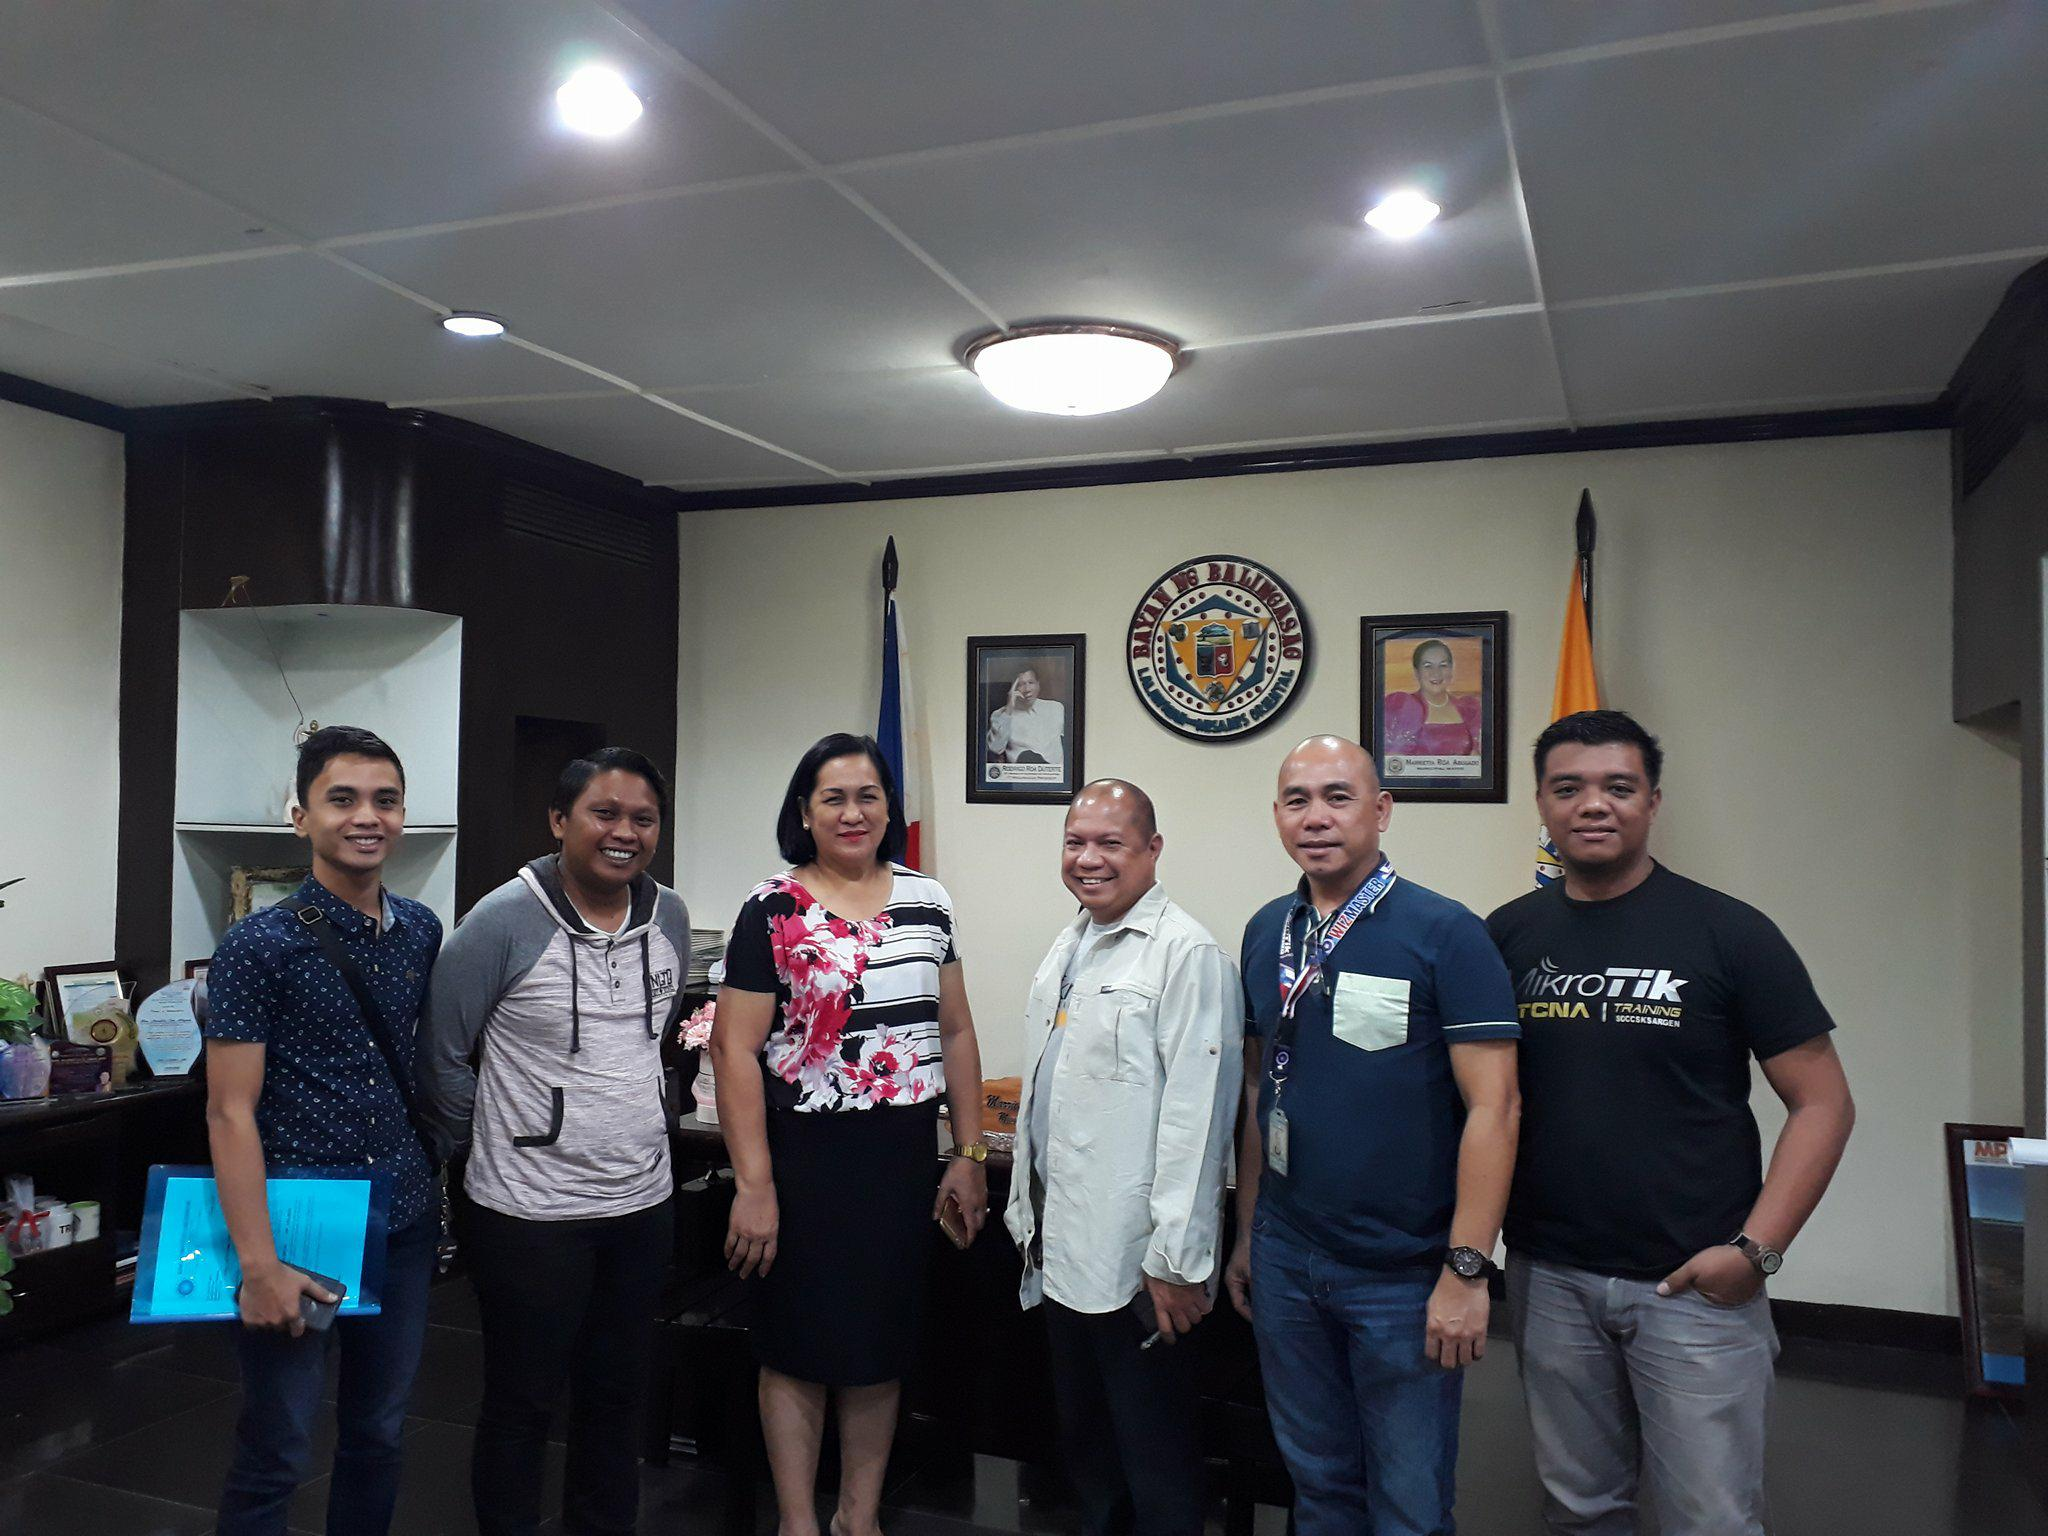 Meeting with Mayor of Balingasag